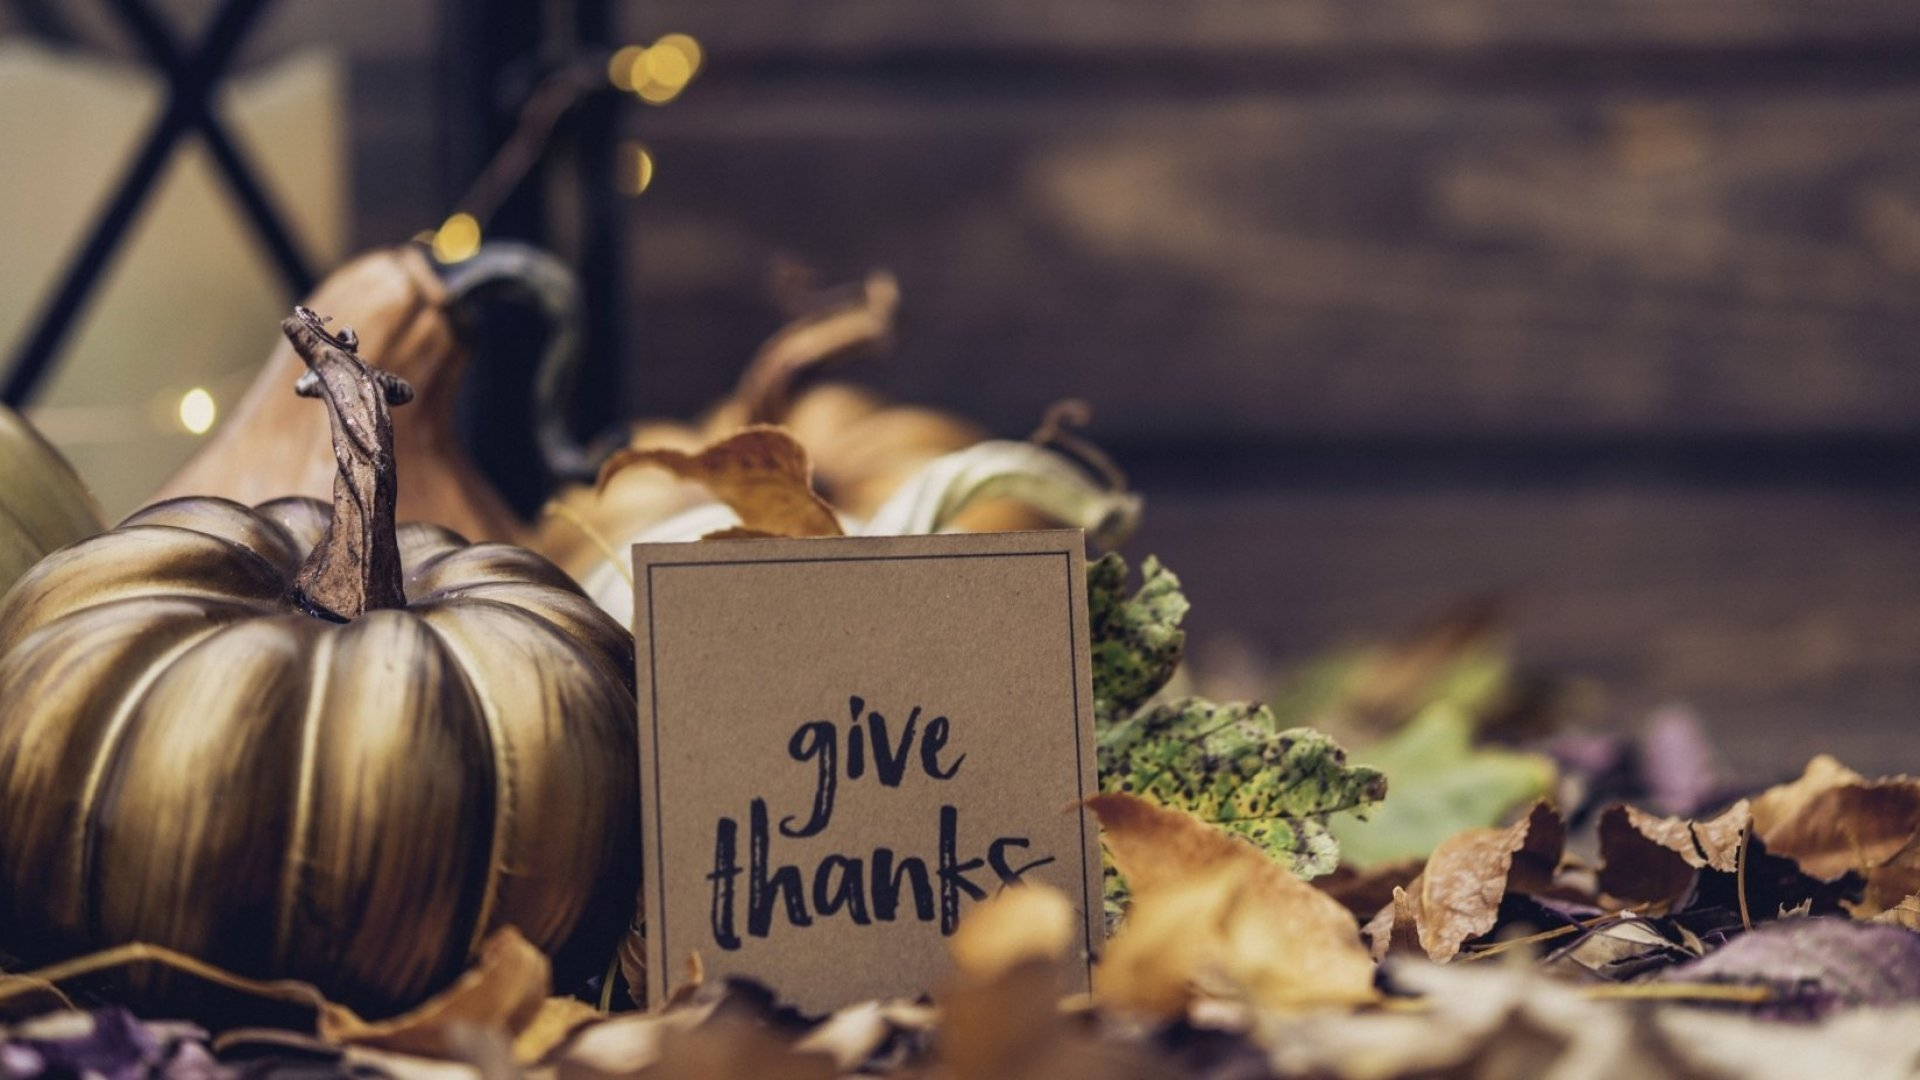 6 Reasons to Appreciate Entrepreneurship This Thanksgiving